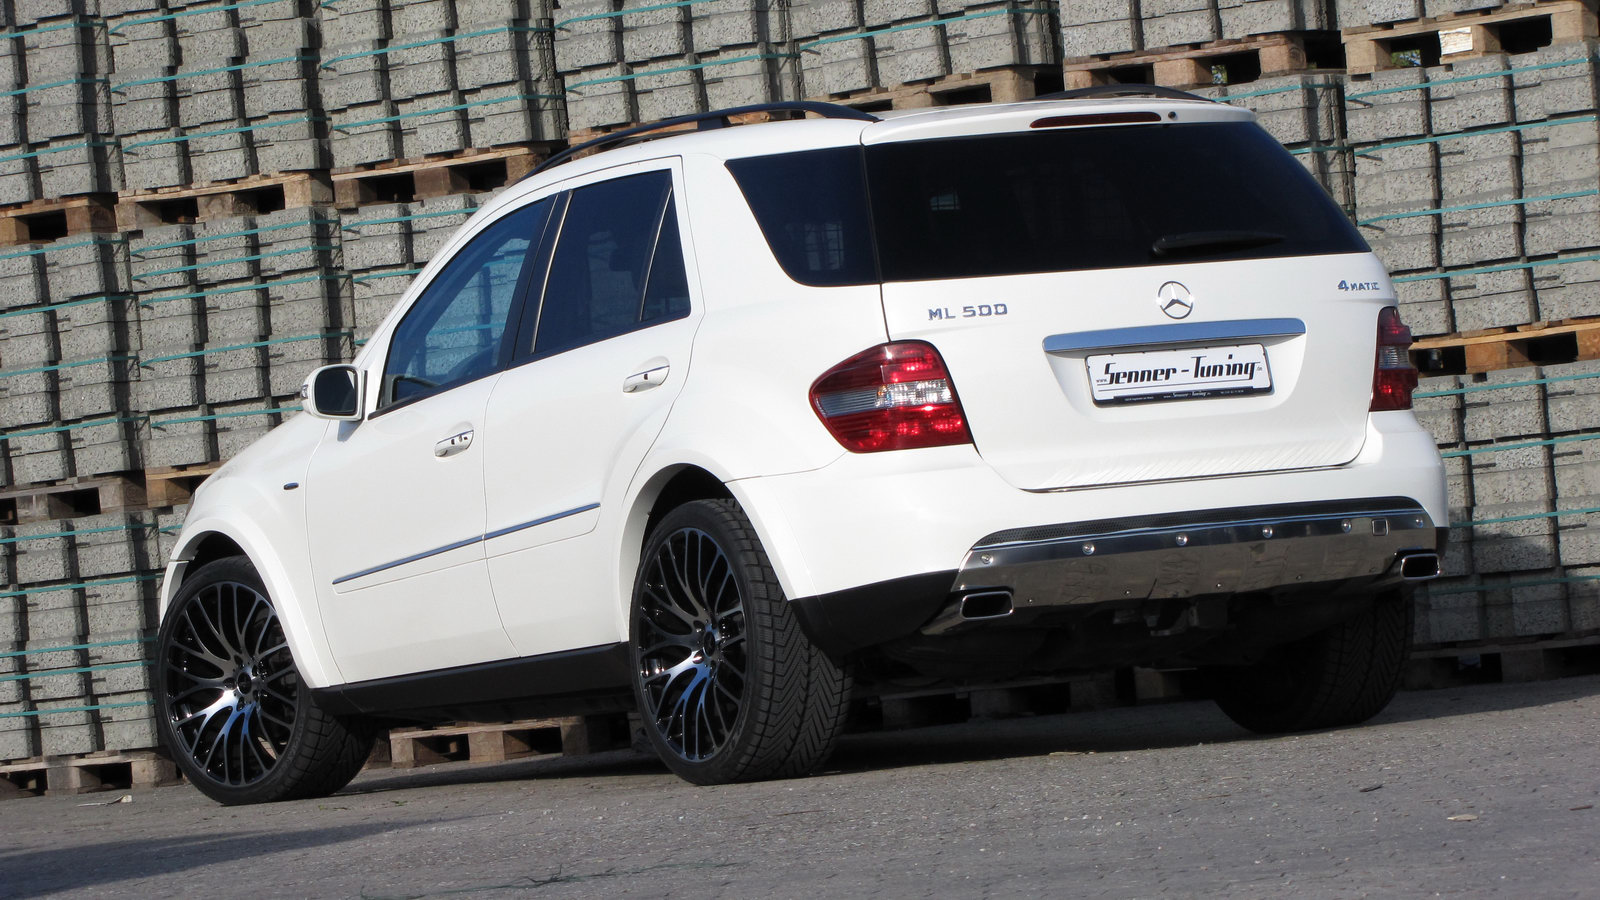 Mercedes-Benz ML 500 Automatic